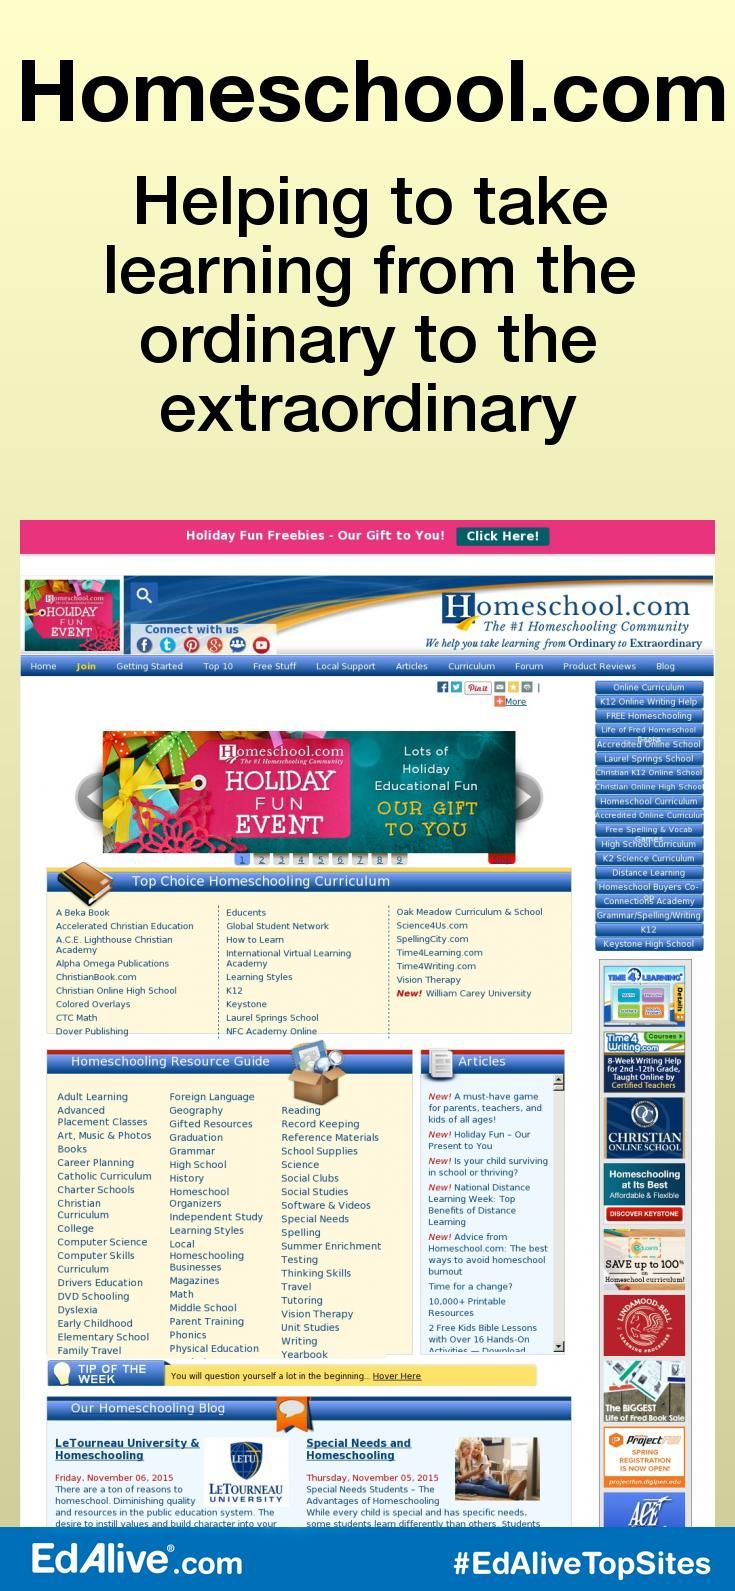 Helping to take learning from the ordinary to the extraordinary   A comprehensive site covering all aspects of home schooling with hints, tips, advice, printable resources and more. Homeschool.com has been in business for over 14 years helping homeschooling families like you get the information they need about the different curriculum, products and services offered to the homeschooling community. #HomeSchooling #EdAliveTopSites